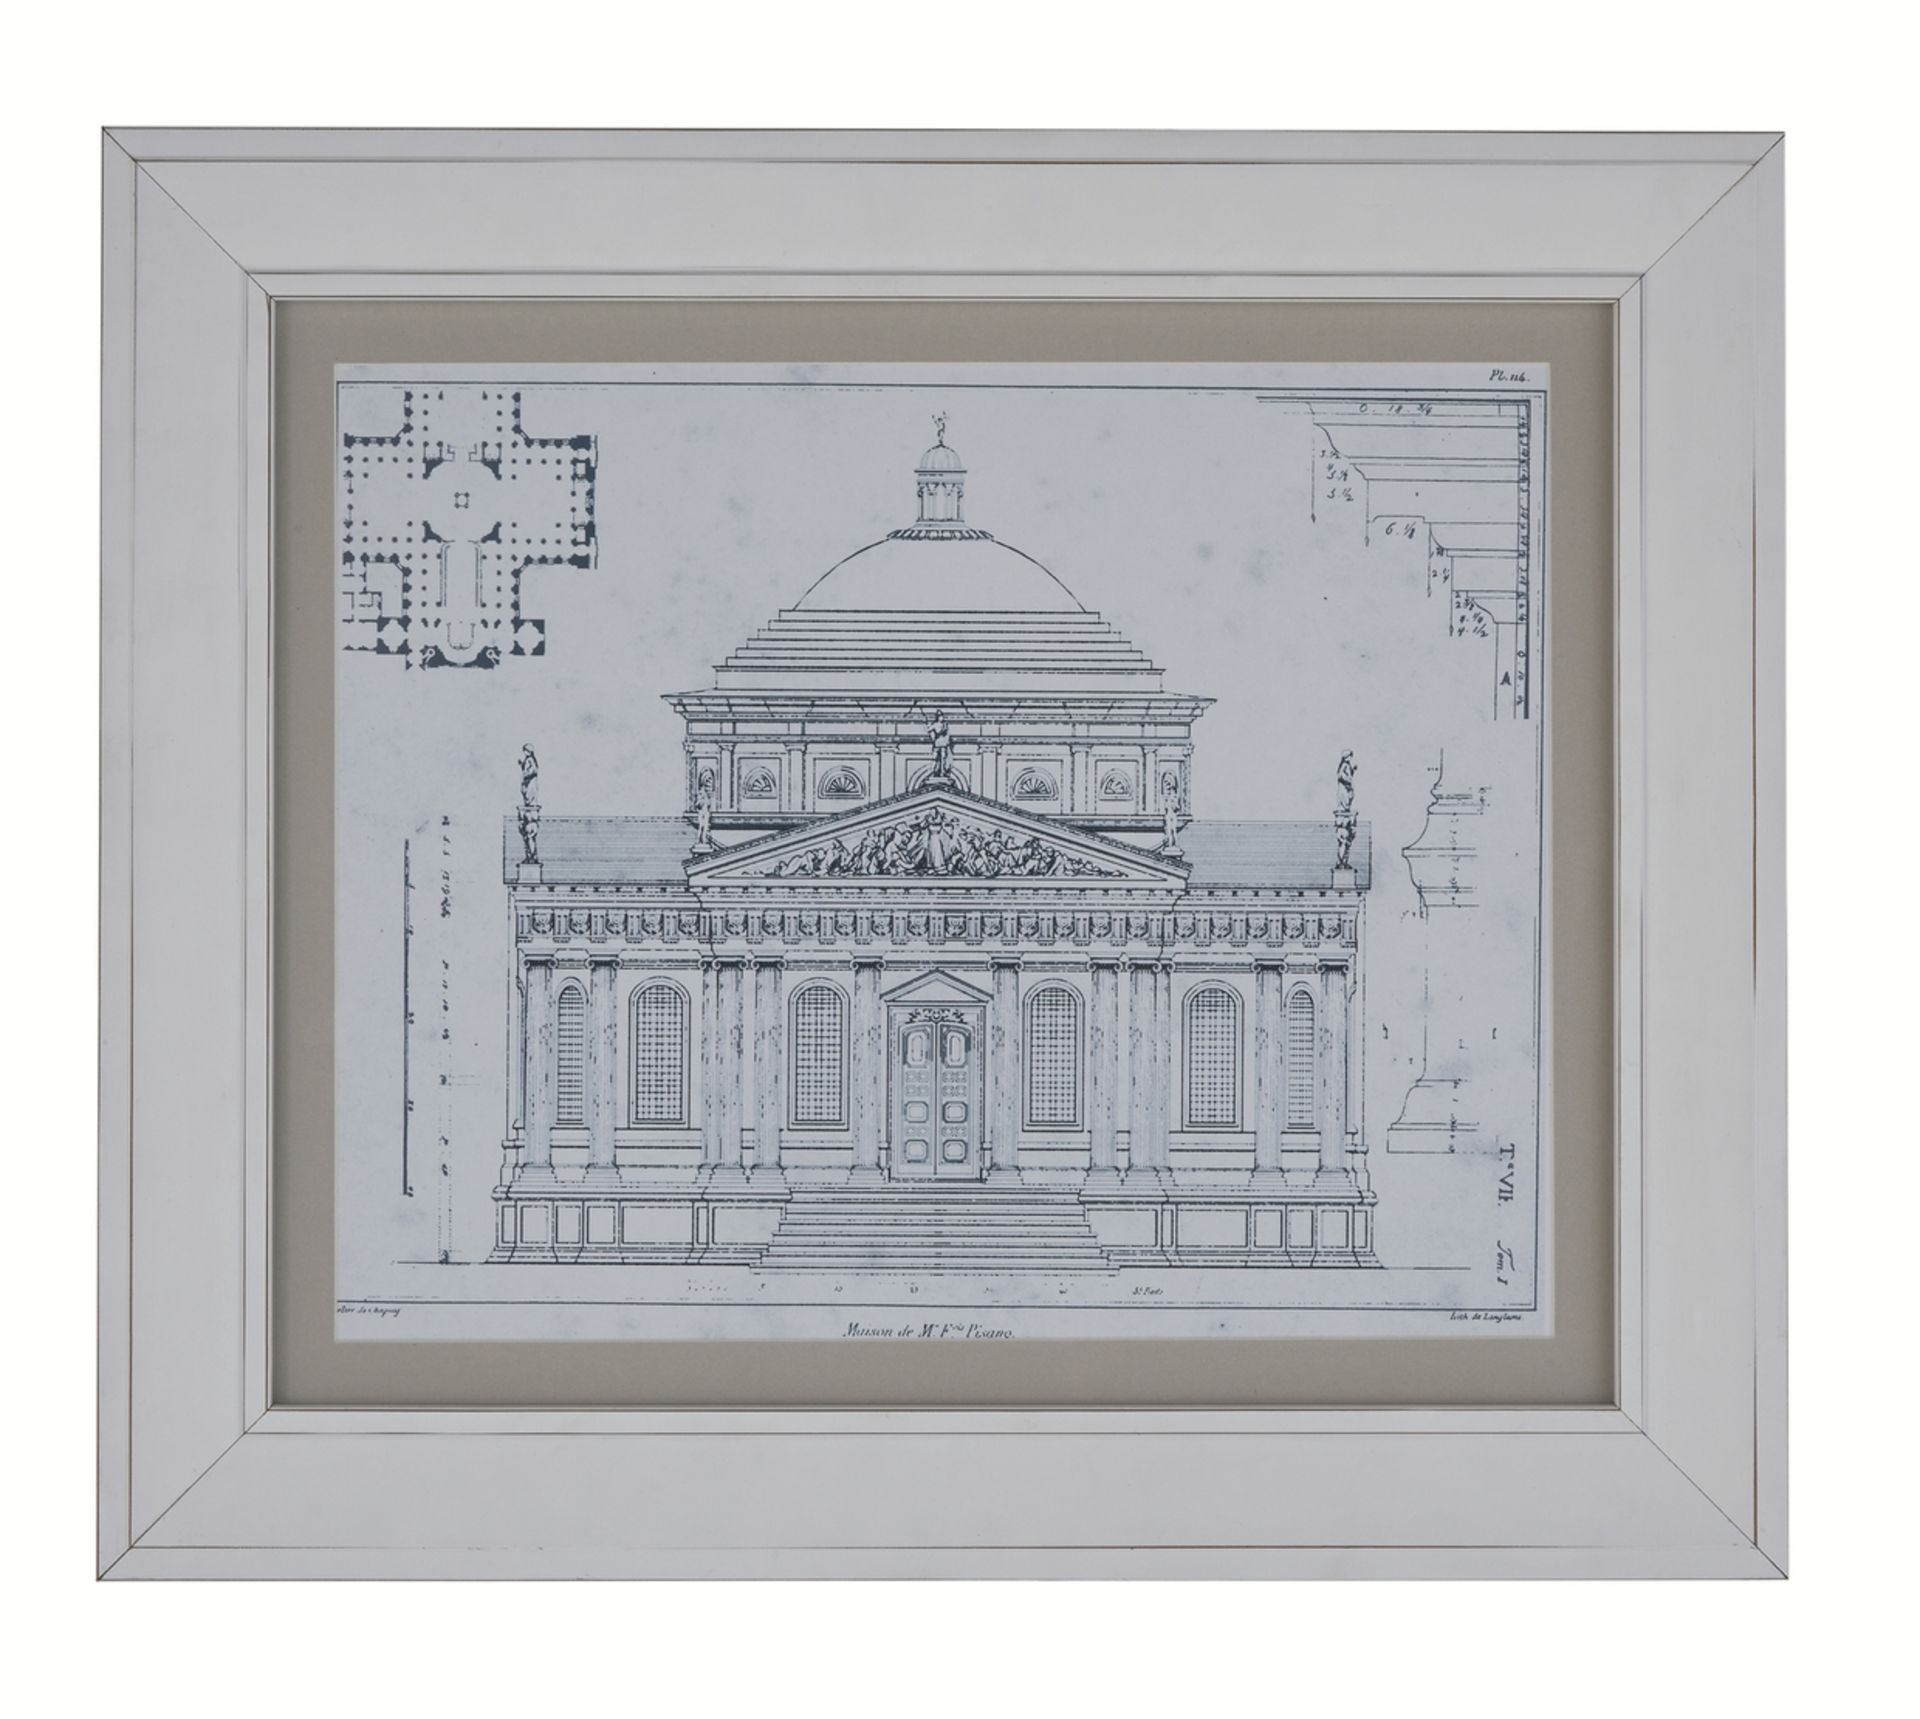 Lot 102 - 87 items Mixed Lot - Brand New Interior Décor WallArt/Canvases from Arthouse, Approx RRP £799.32